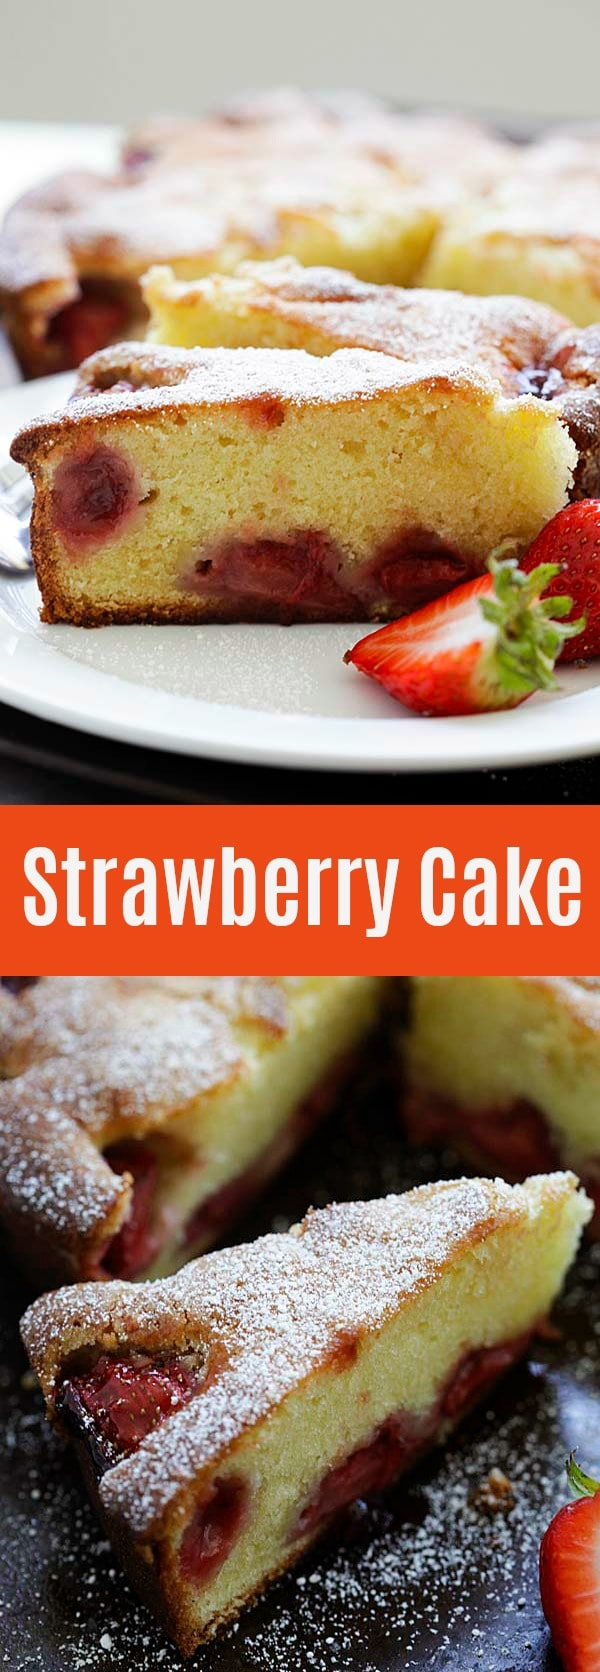 Strawberry Cake - the best strawberry cake recipe ever, loaded with one pound of fresh strawberries. The cake is moist, buttery, sweet and absolutely delicious!